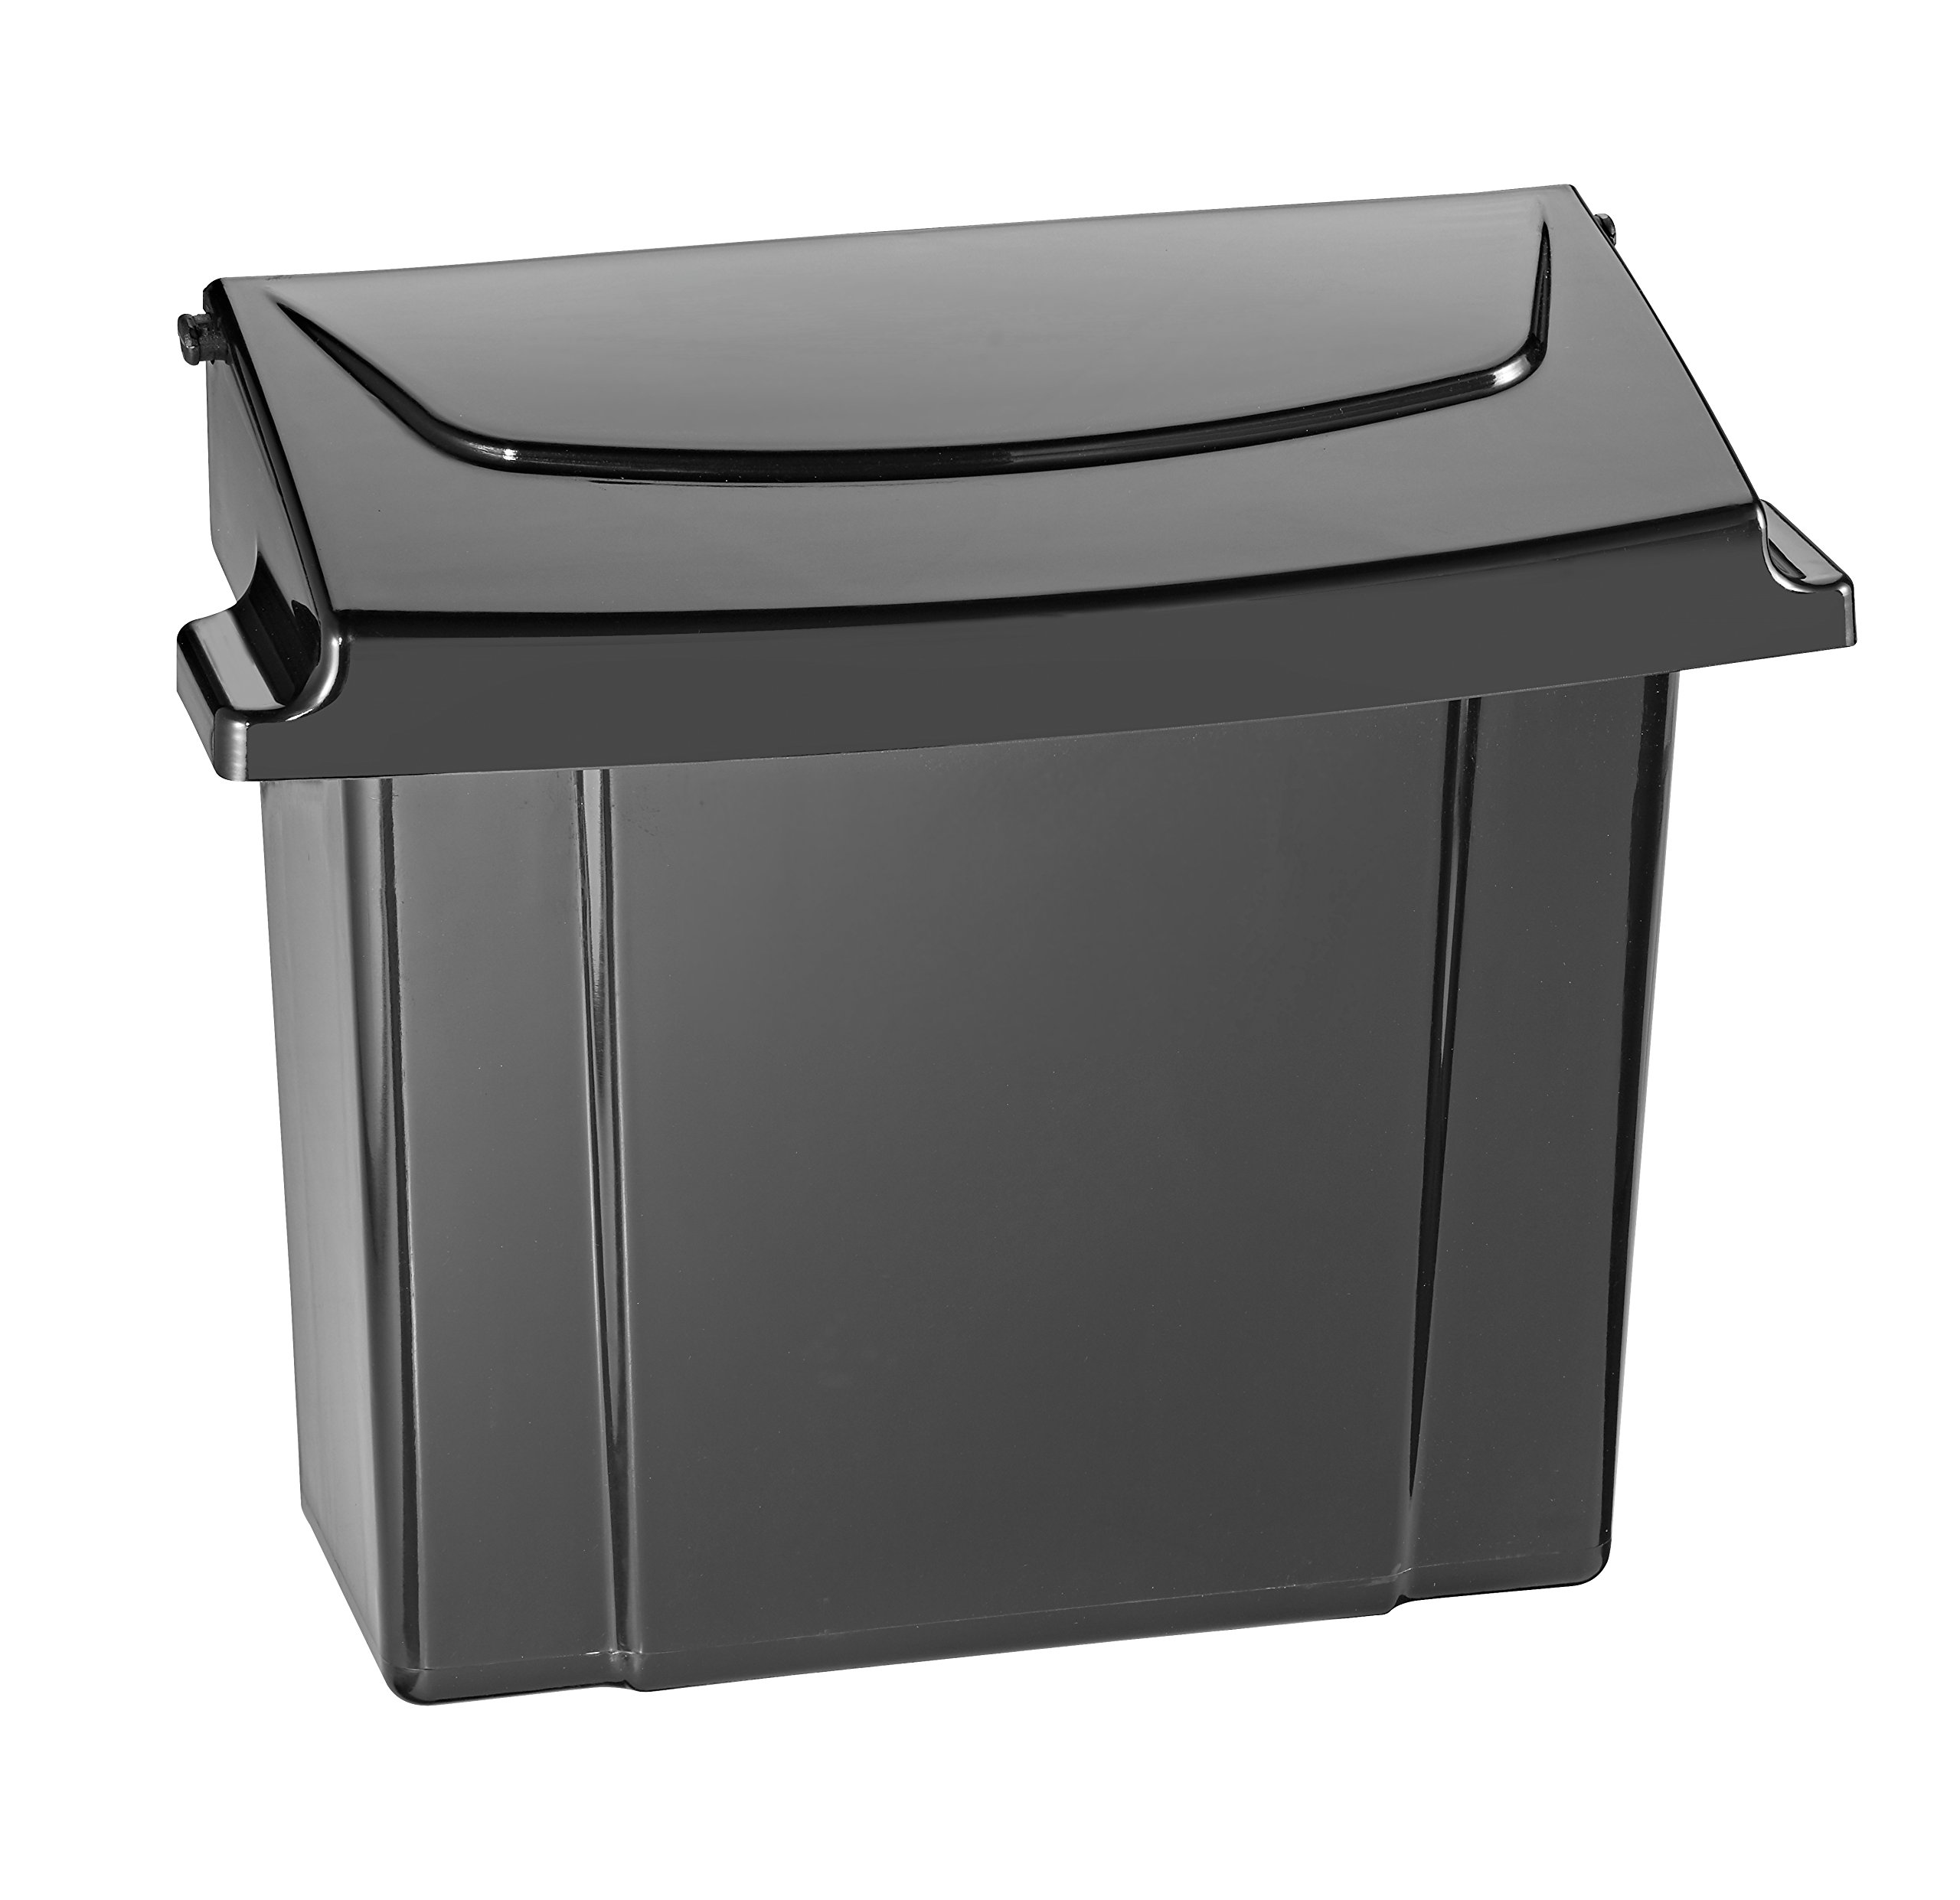 Alpine Sanitary Napkins Receptacle - Feminine Hygiene Products, Tampon & Waste Disposal Container - Durable ABS Plastic - Seals Tightly & Traps Odors -Easy Installation Hardware Included (Black)